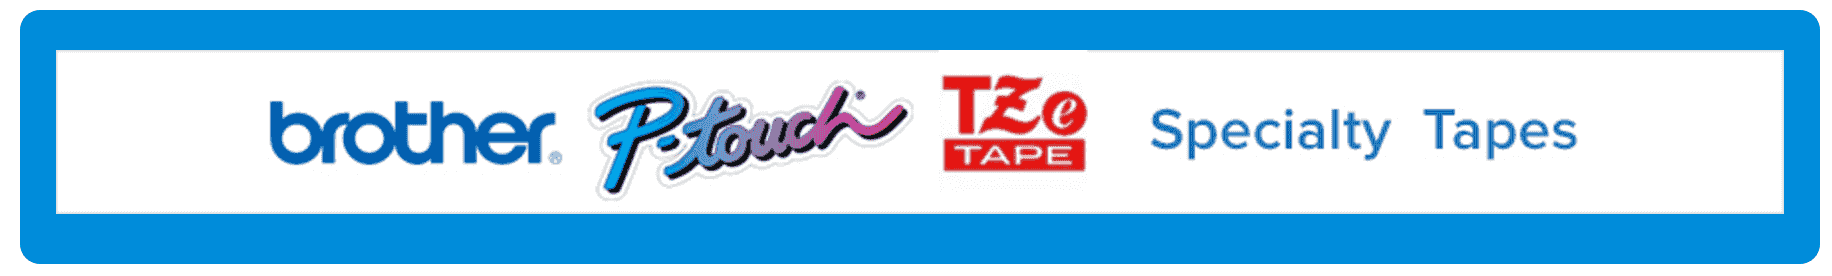 P-touch TZe Specialty Tapes